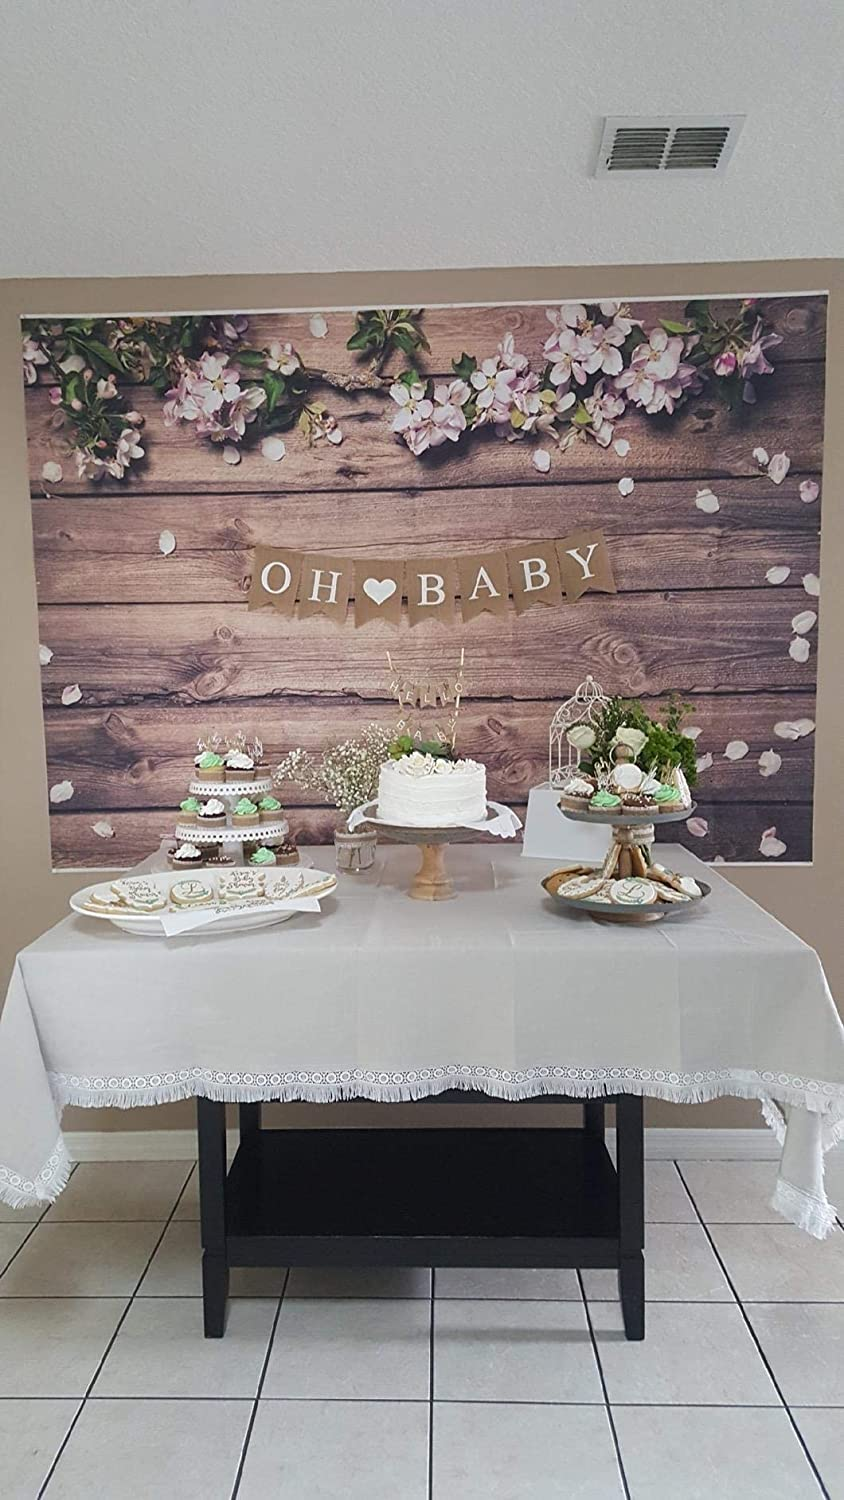 7/×5ft Background Wall Drop Vinyl Cake Flower Gray Wooden Floor Easy to Clean Christmas Decoration Decorative Wall Photo Booth Background Photography Outdoor Wedding Photography Background